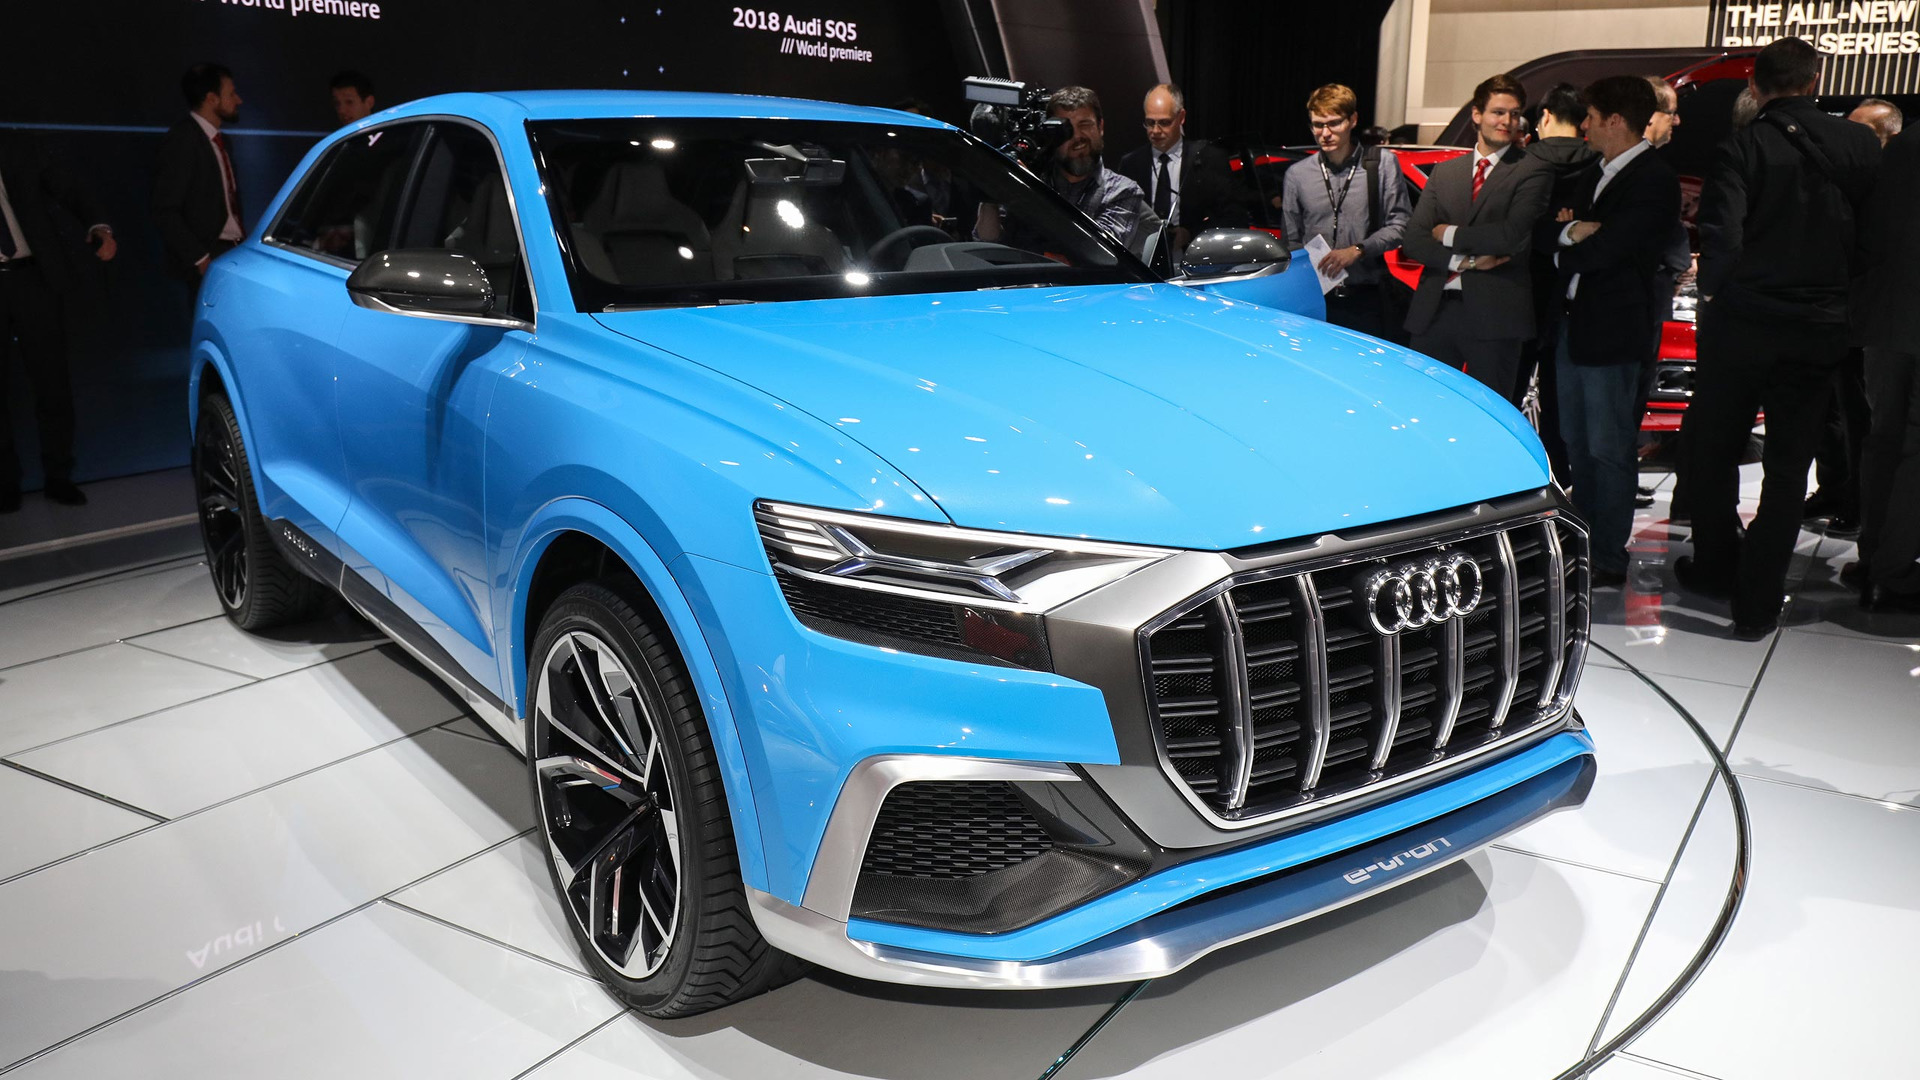 Audi Q Concept Previews Future Flagship CoupeSUV - Audi cars q8 price list